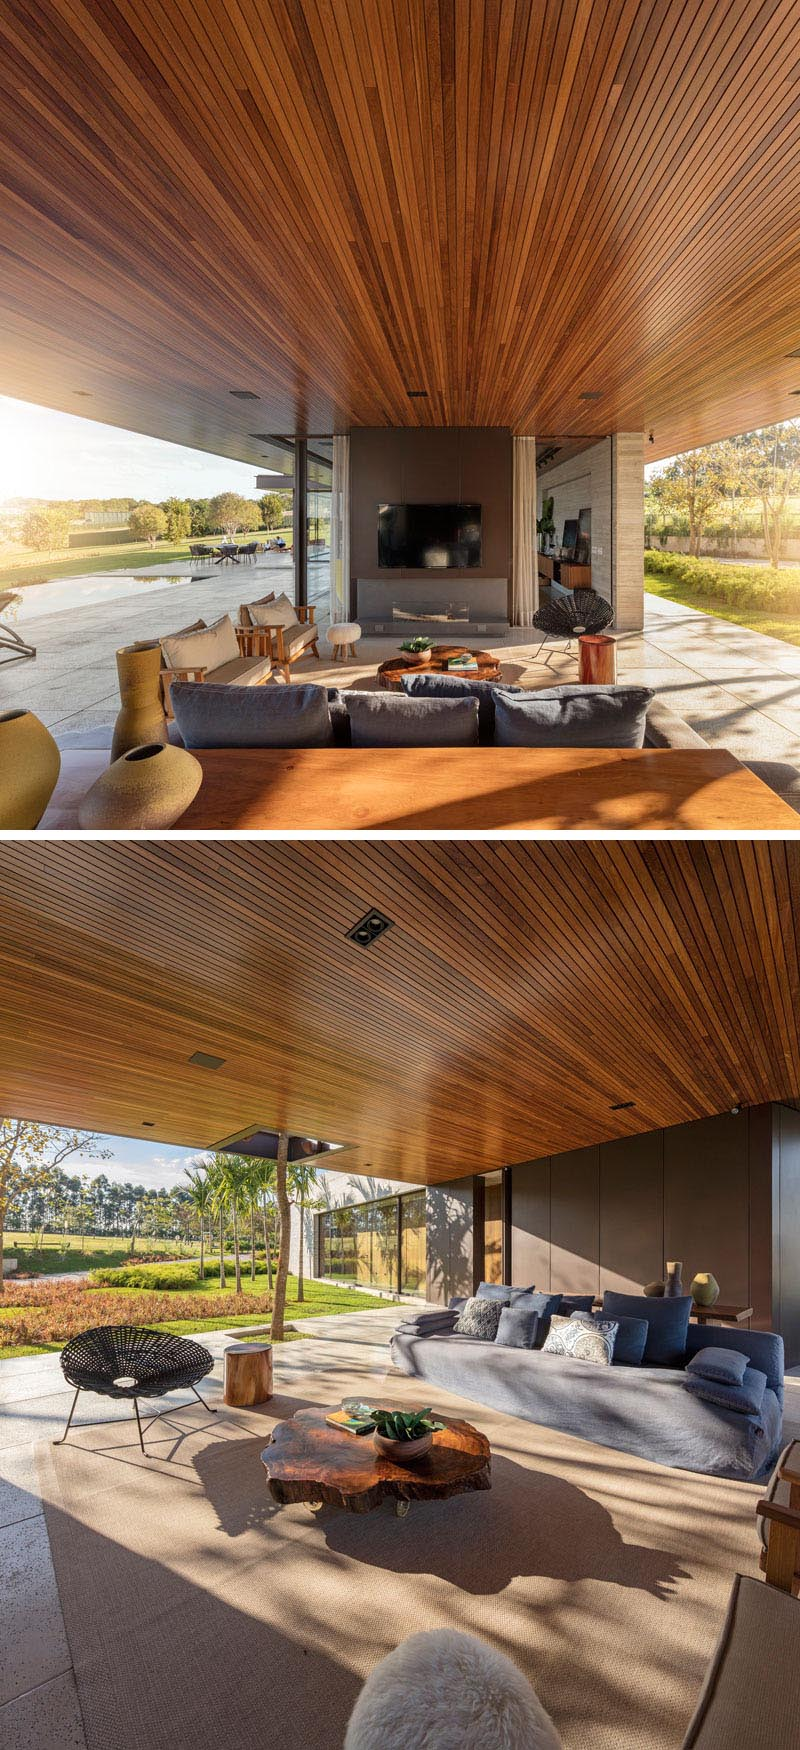 A wood ceiling travels from the interior of the home to the exterior.